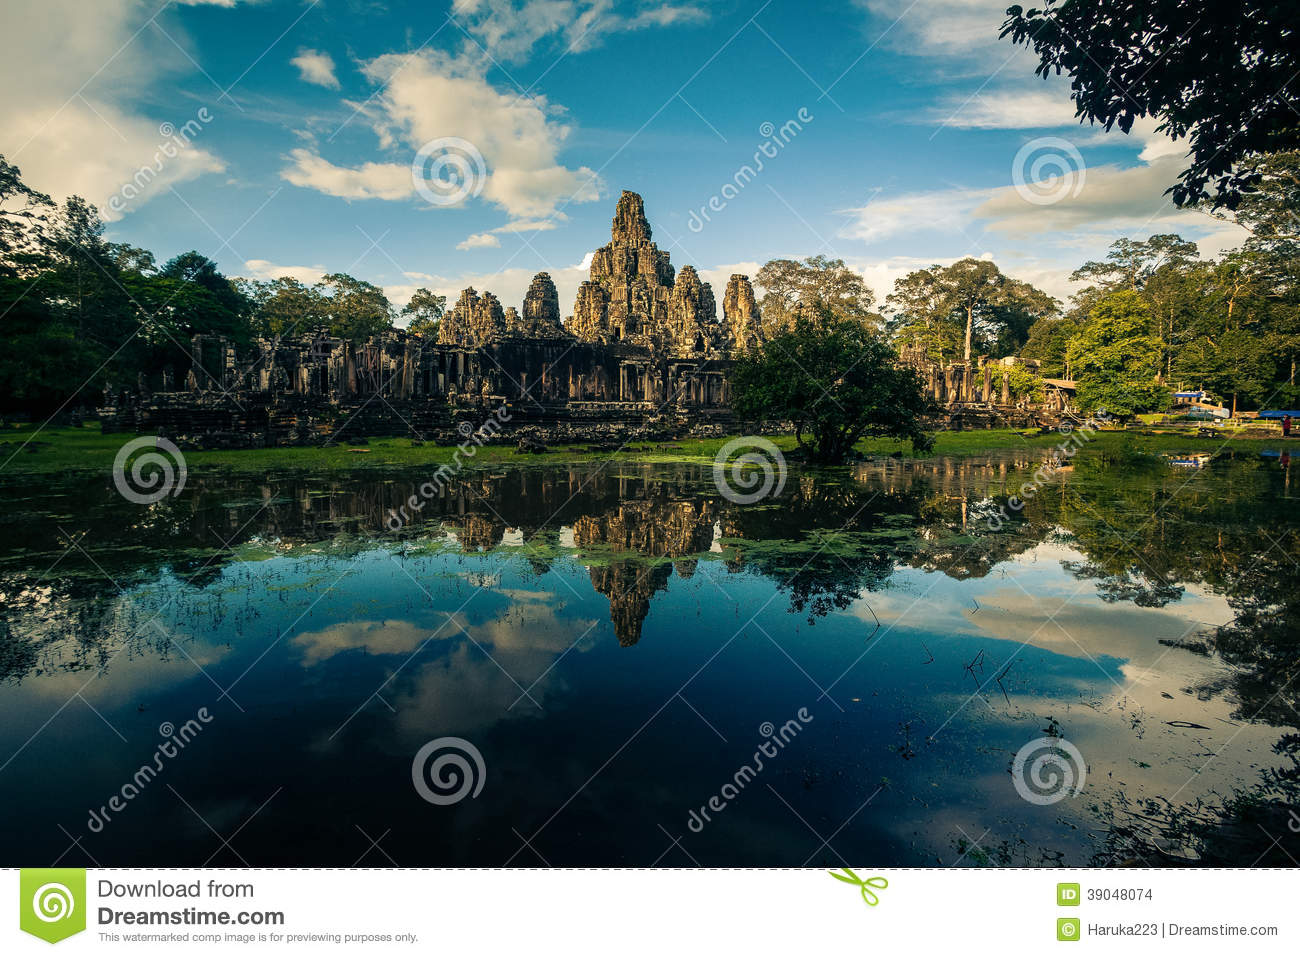 Ankor the lost city